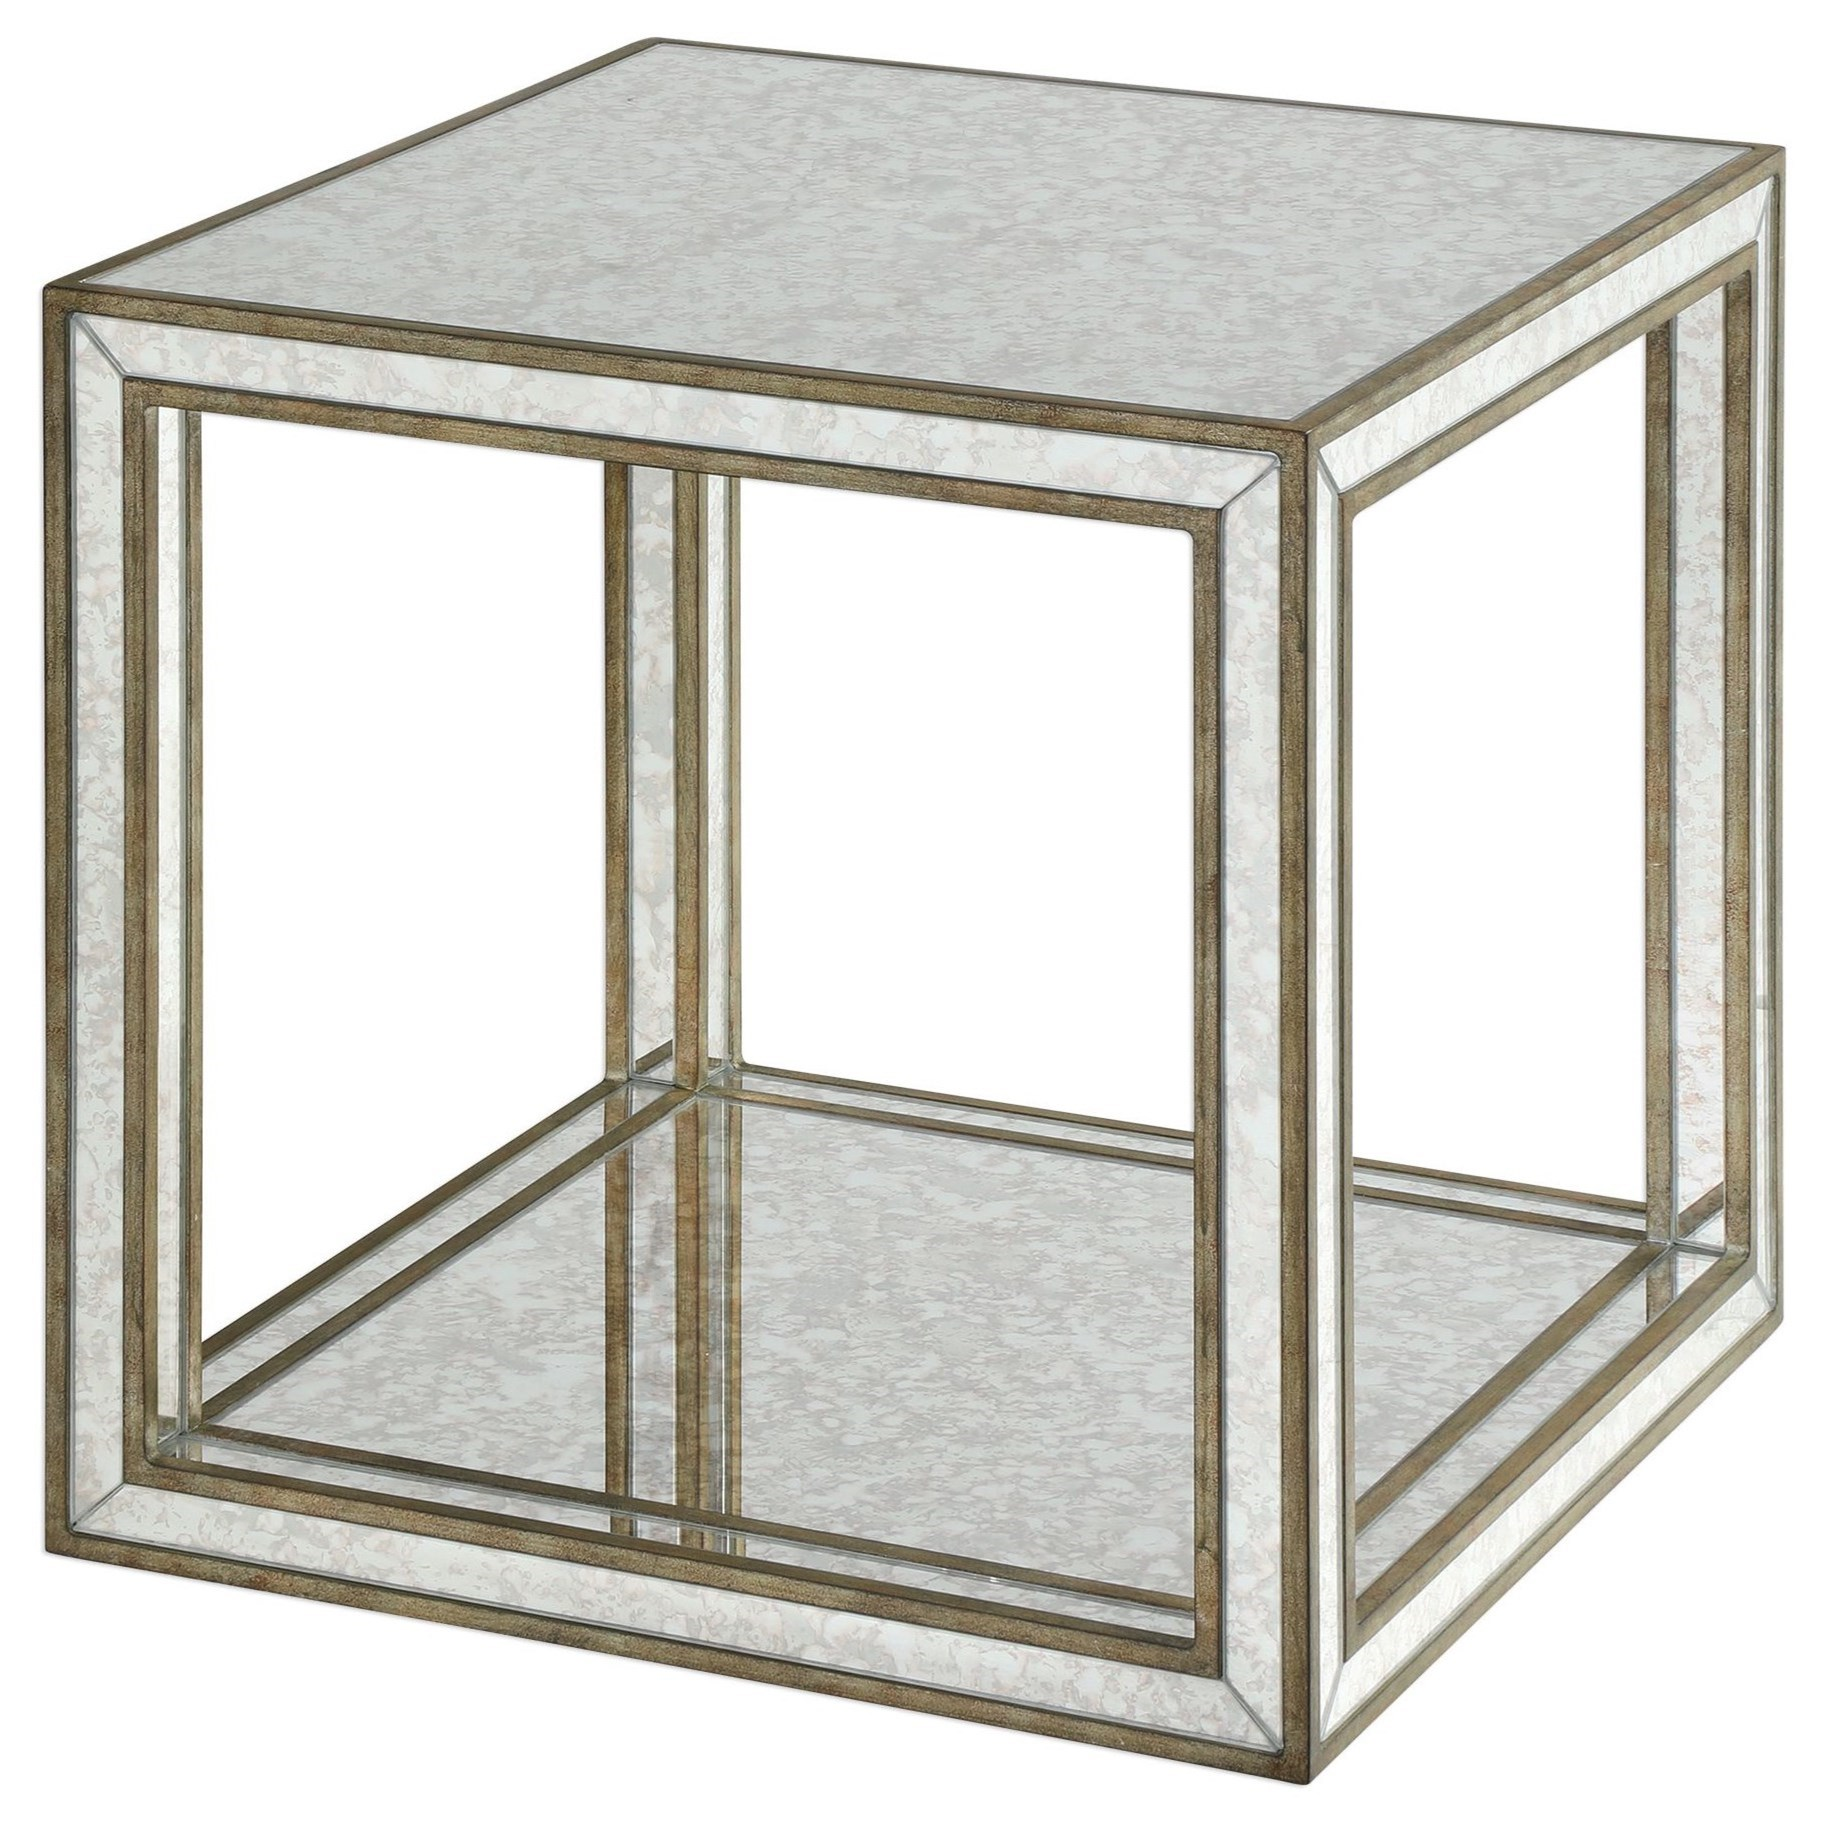 Accent Furniture - Occasional Tables Julie Mirrored Accent Table by Uttermost at Goffena Furniture & Mattress Center